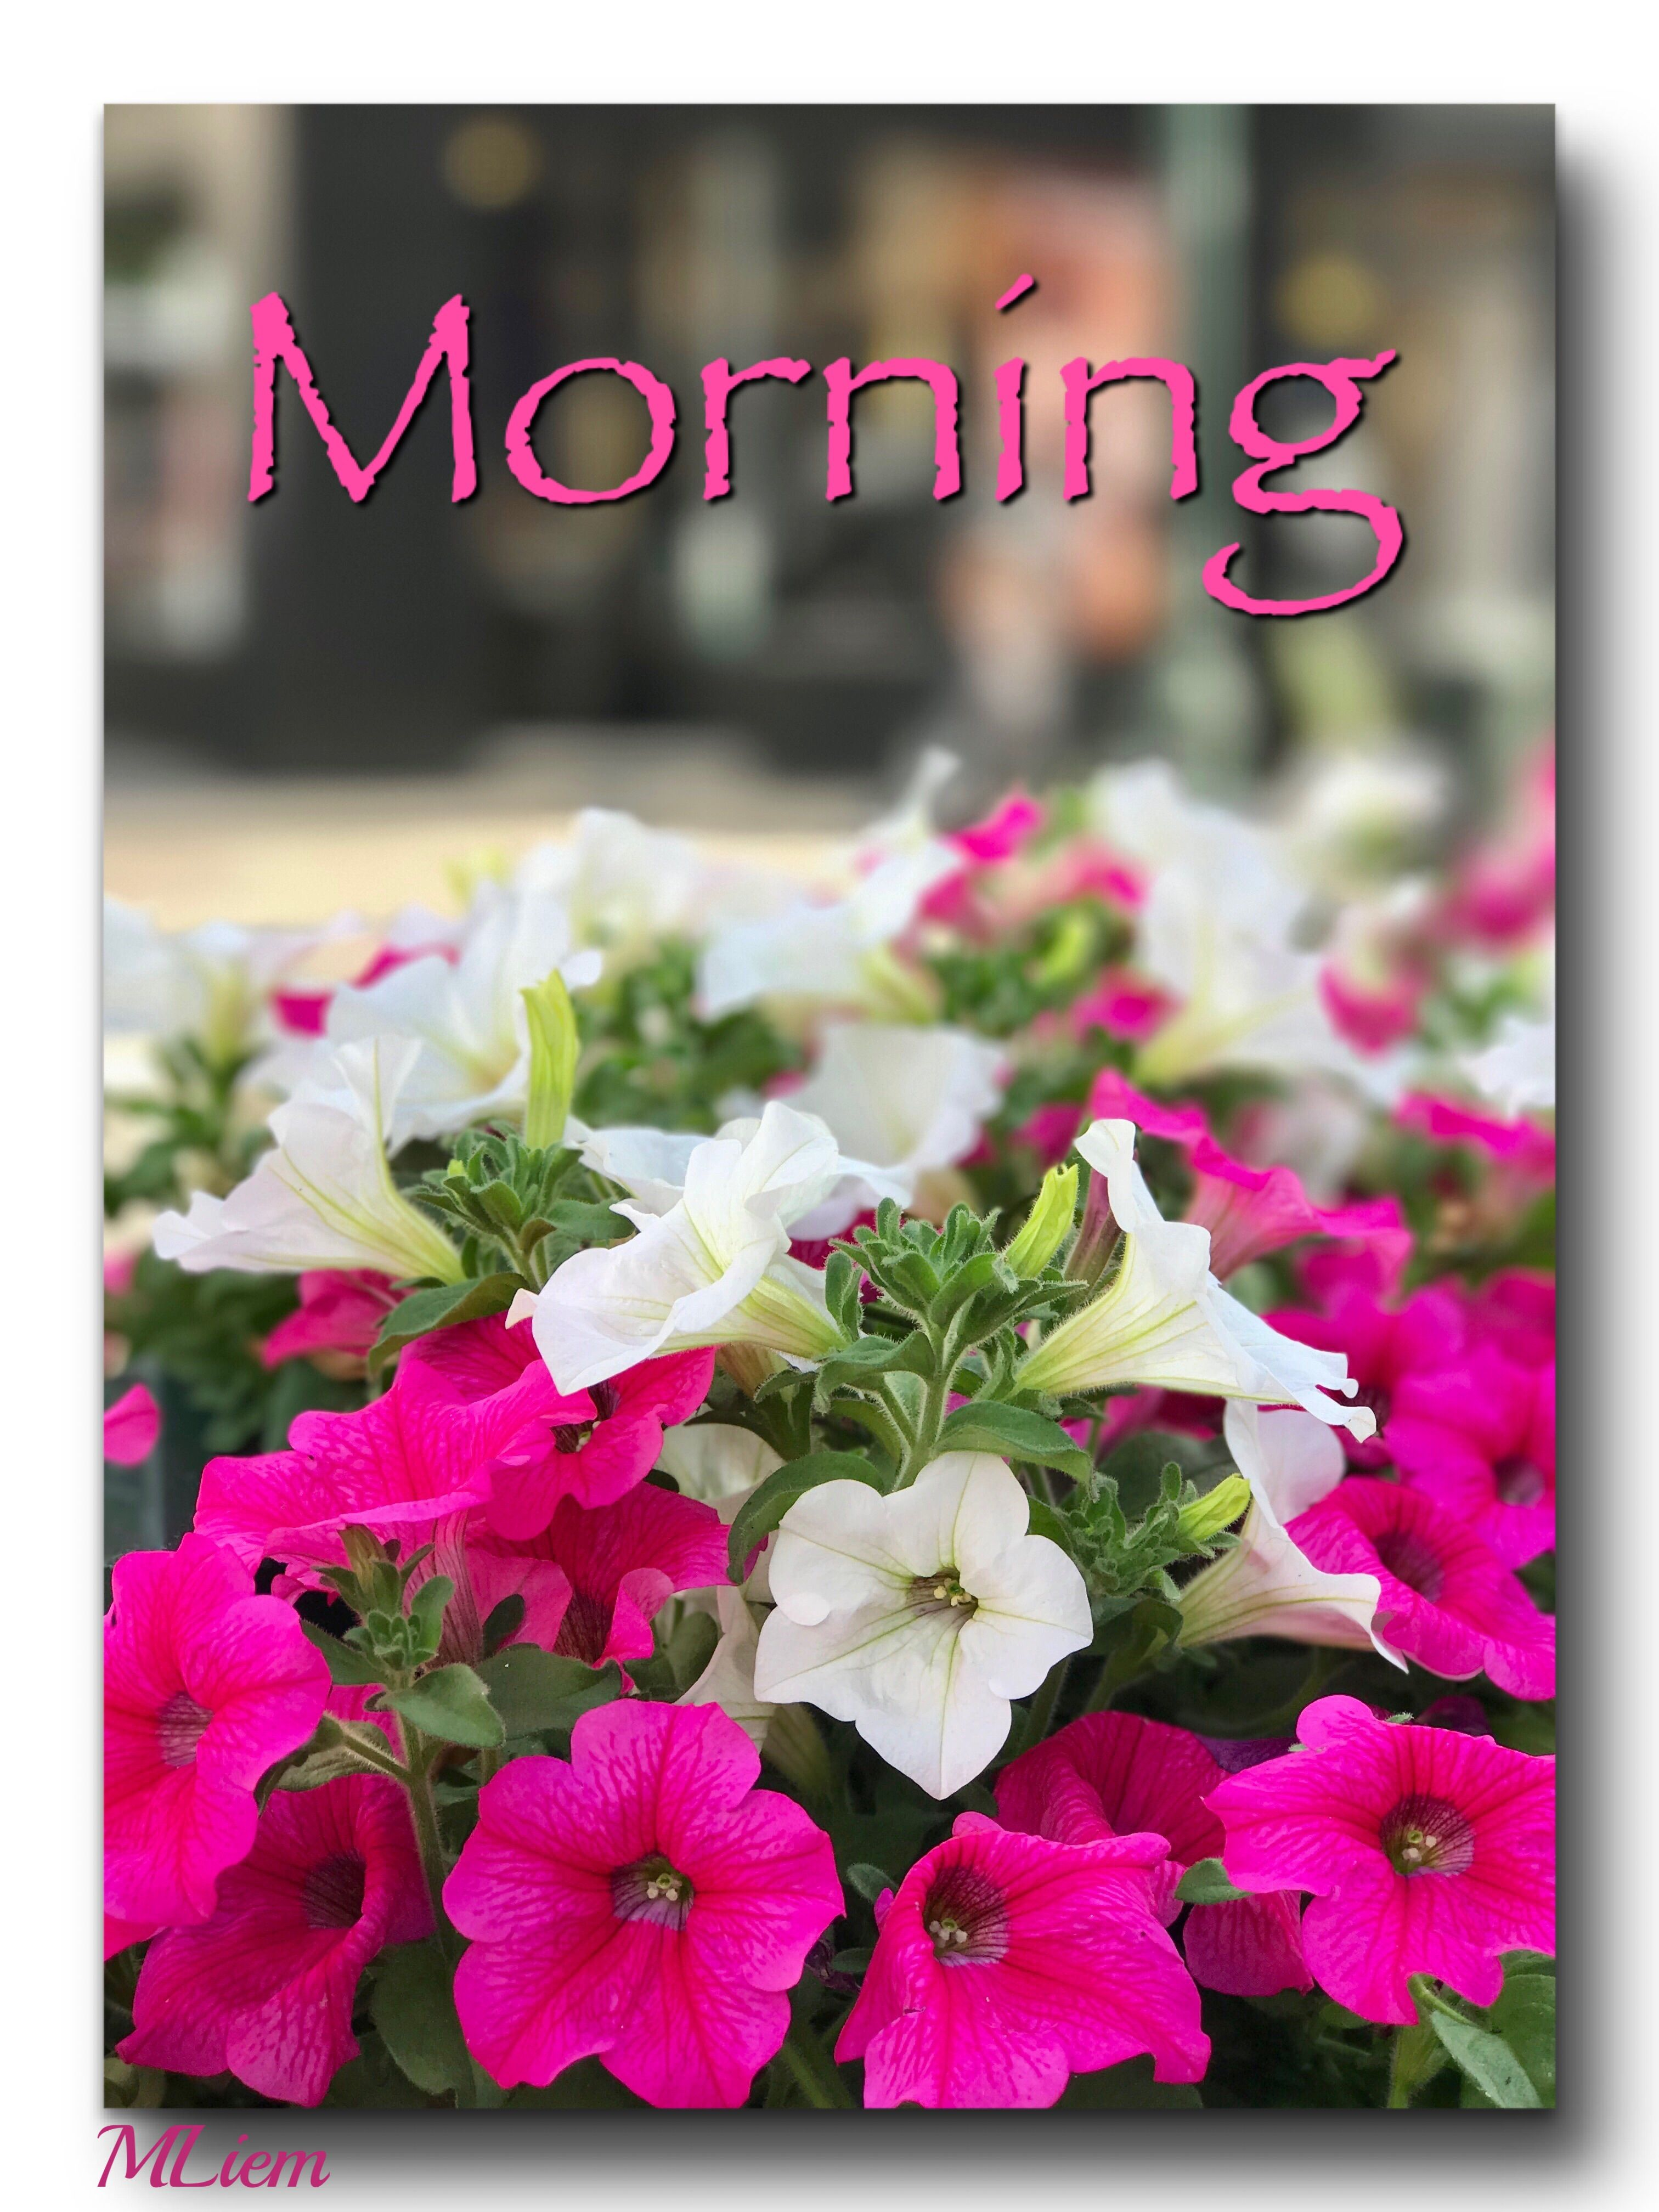 Pin by sathya on Morning Good morning flowers, Morning